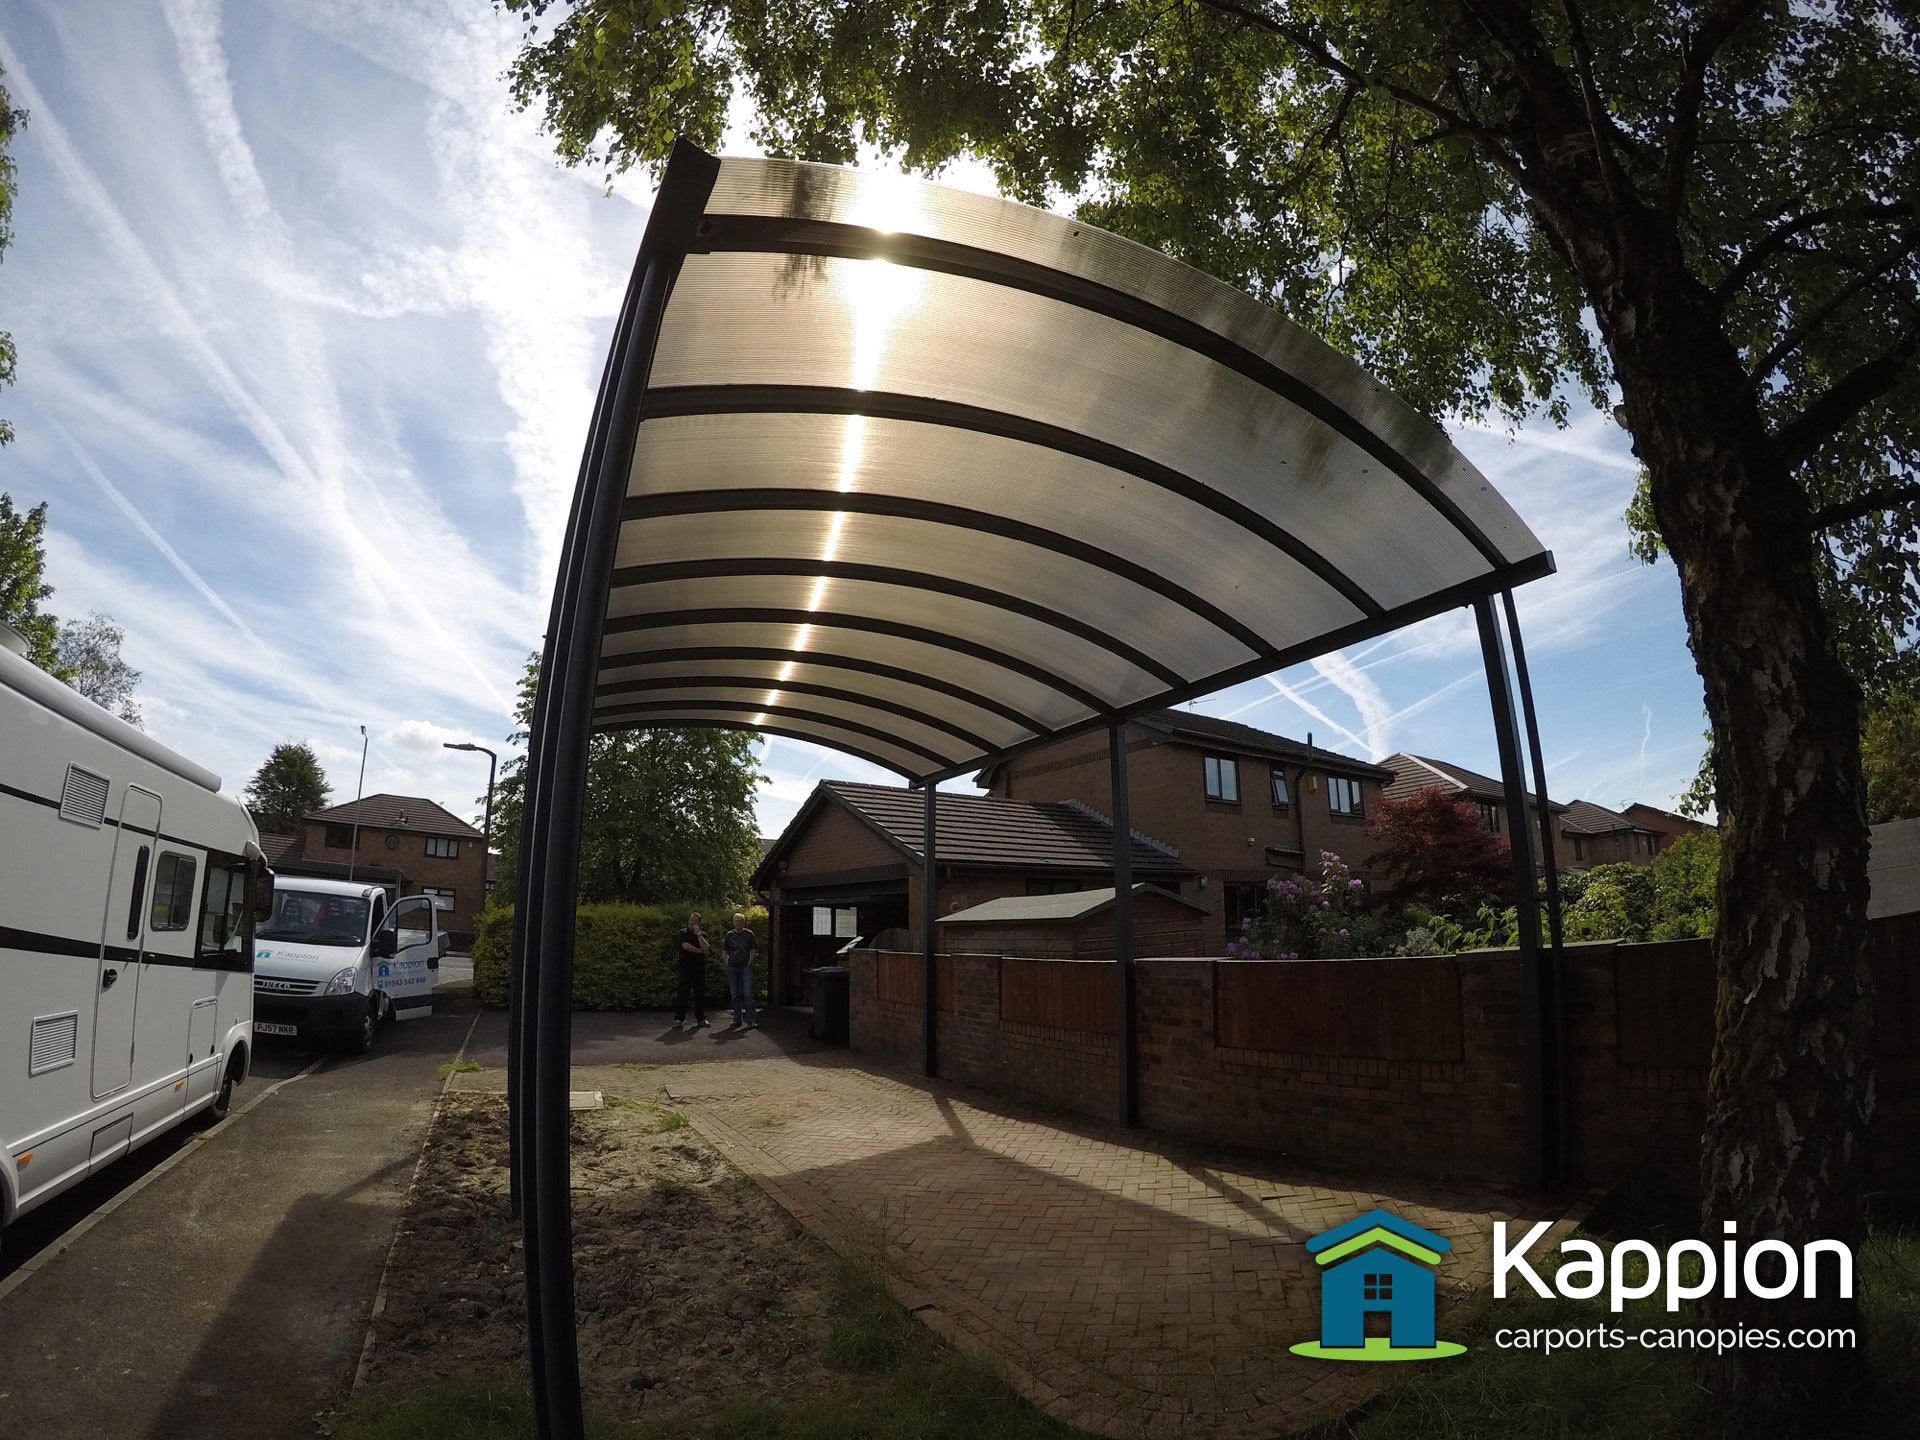 Motorhome Canopy Installed Manchester | Kappion Carports ...